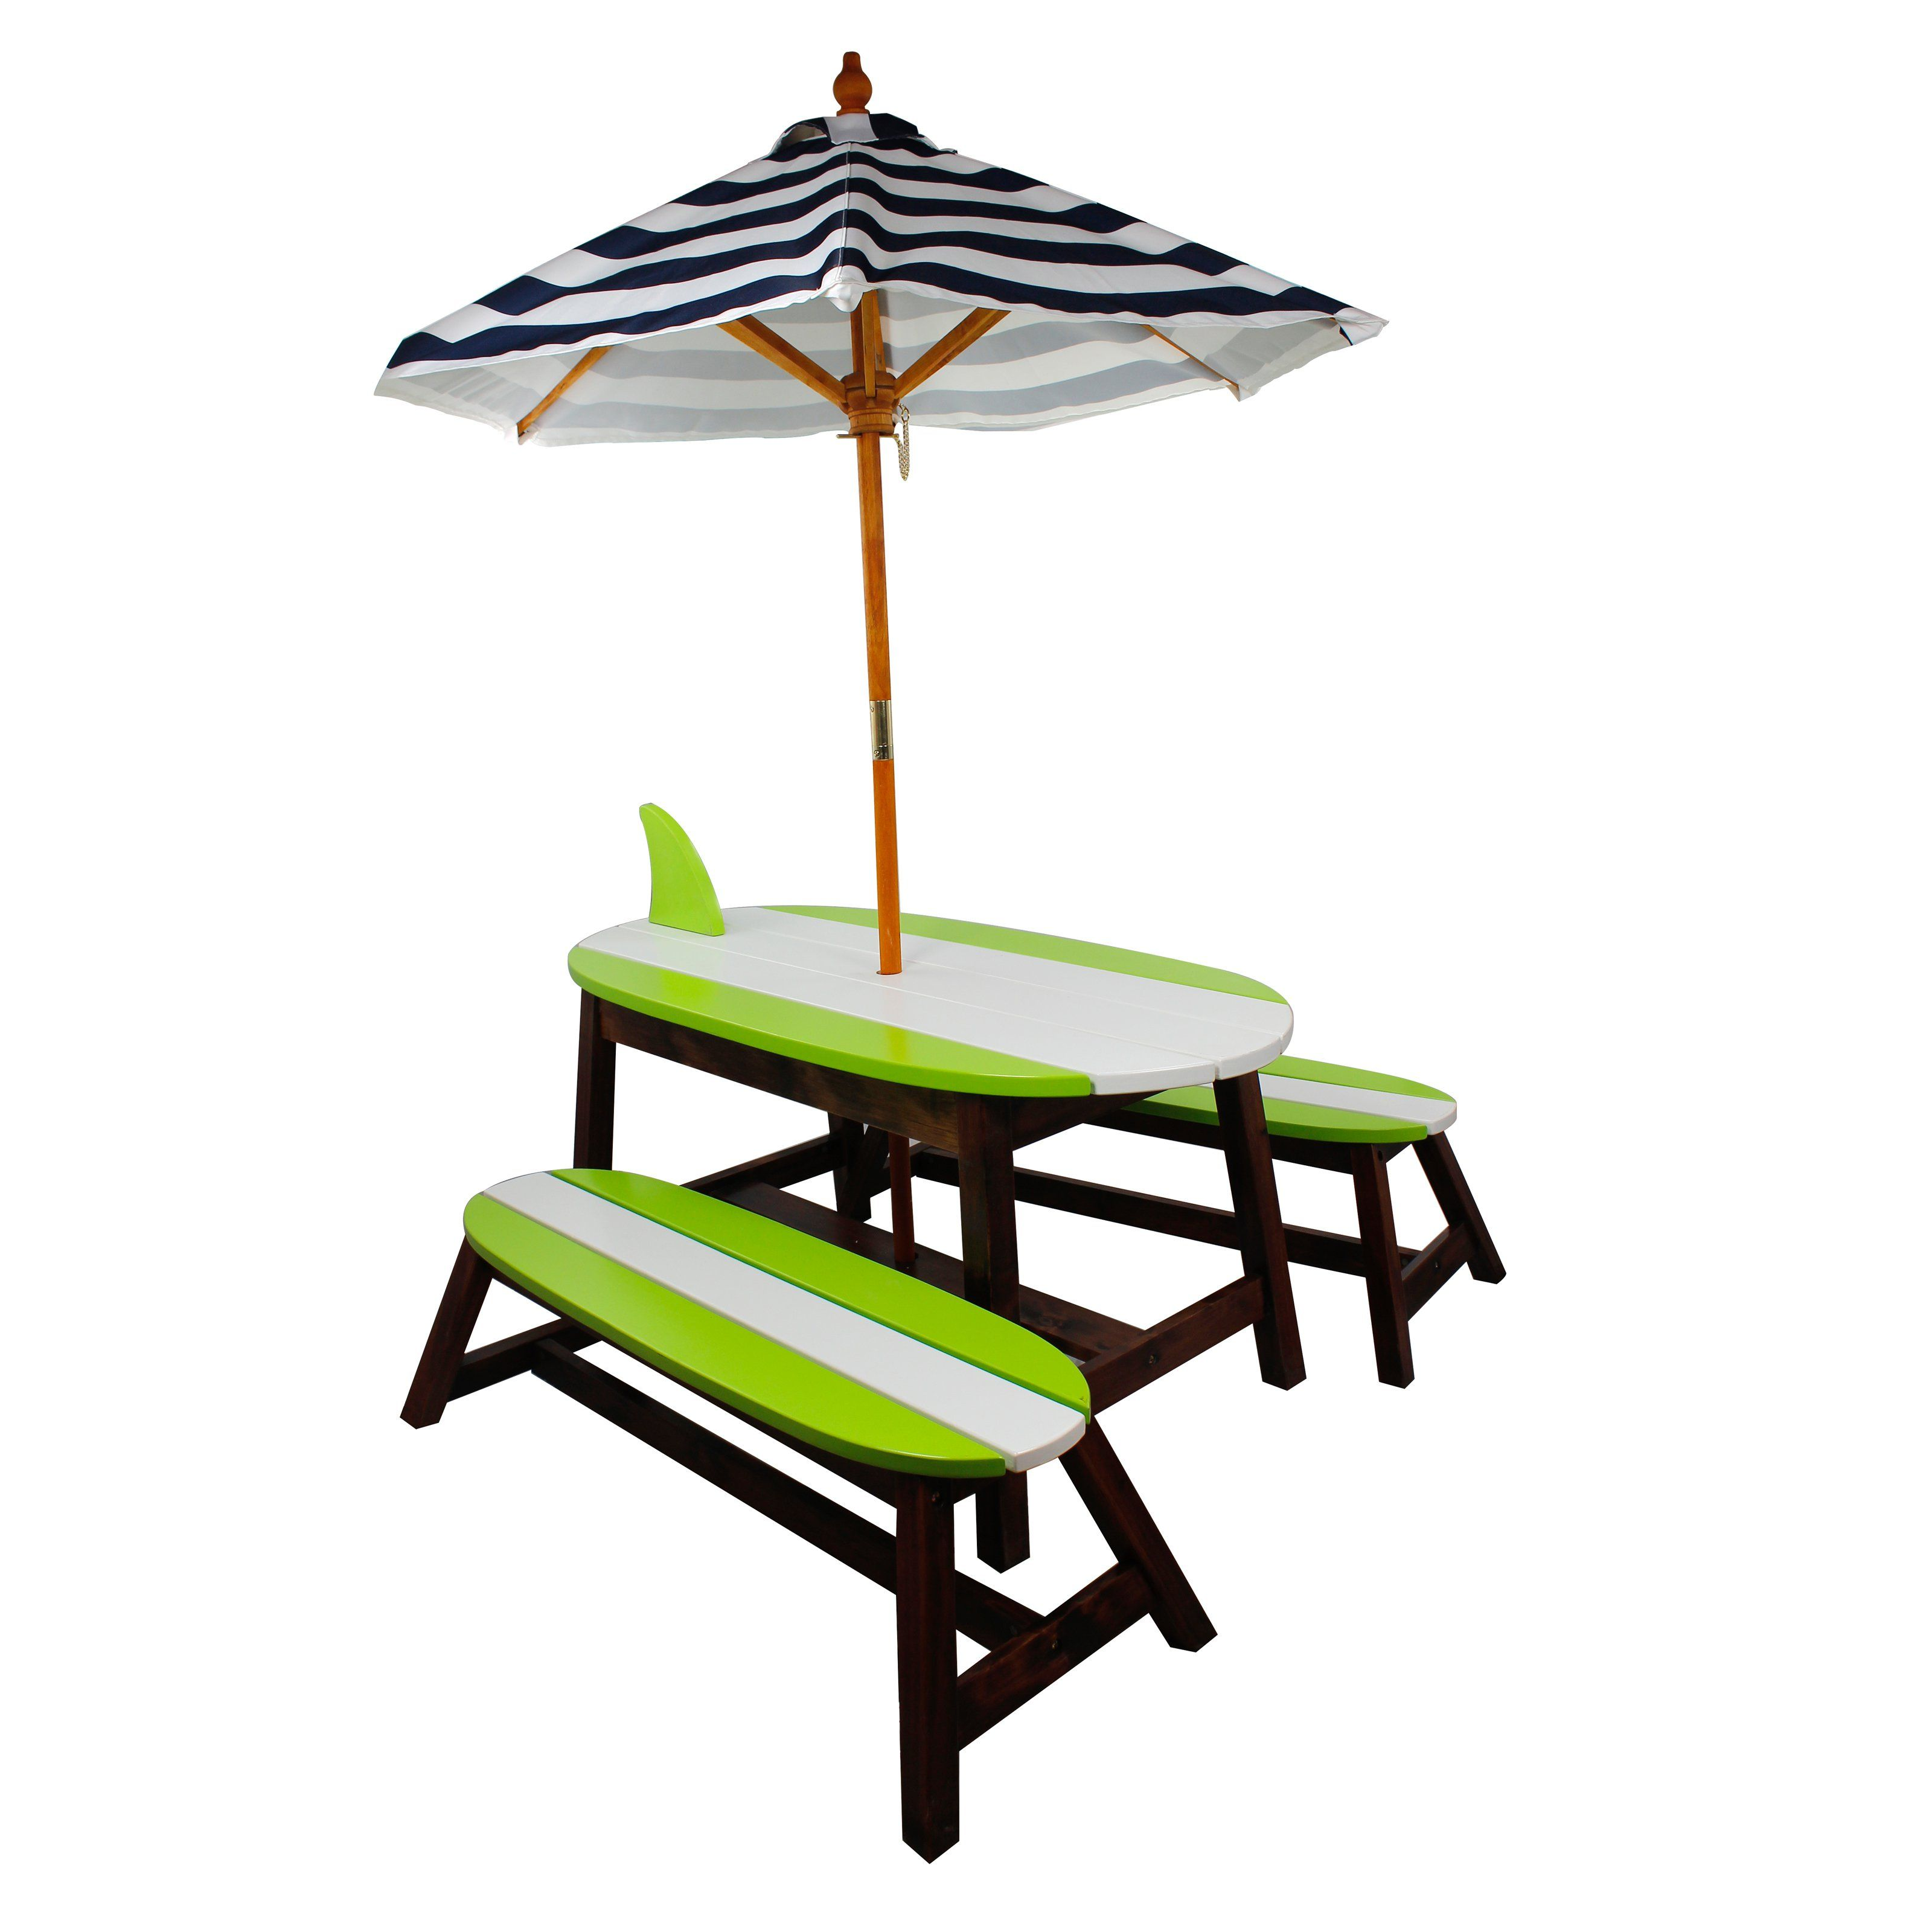 Peachy Have To Have It Winland Surfboard Outdoor Wood Kids Table Creativecarmelina Interior Chair Design Creativecarmelinacom